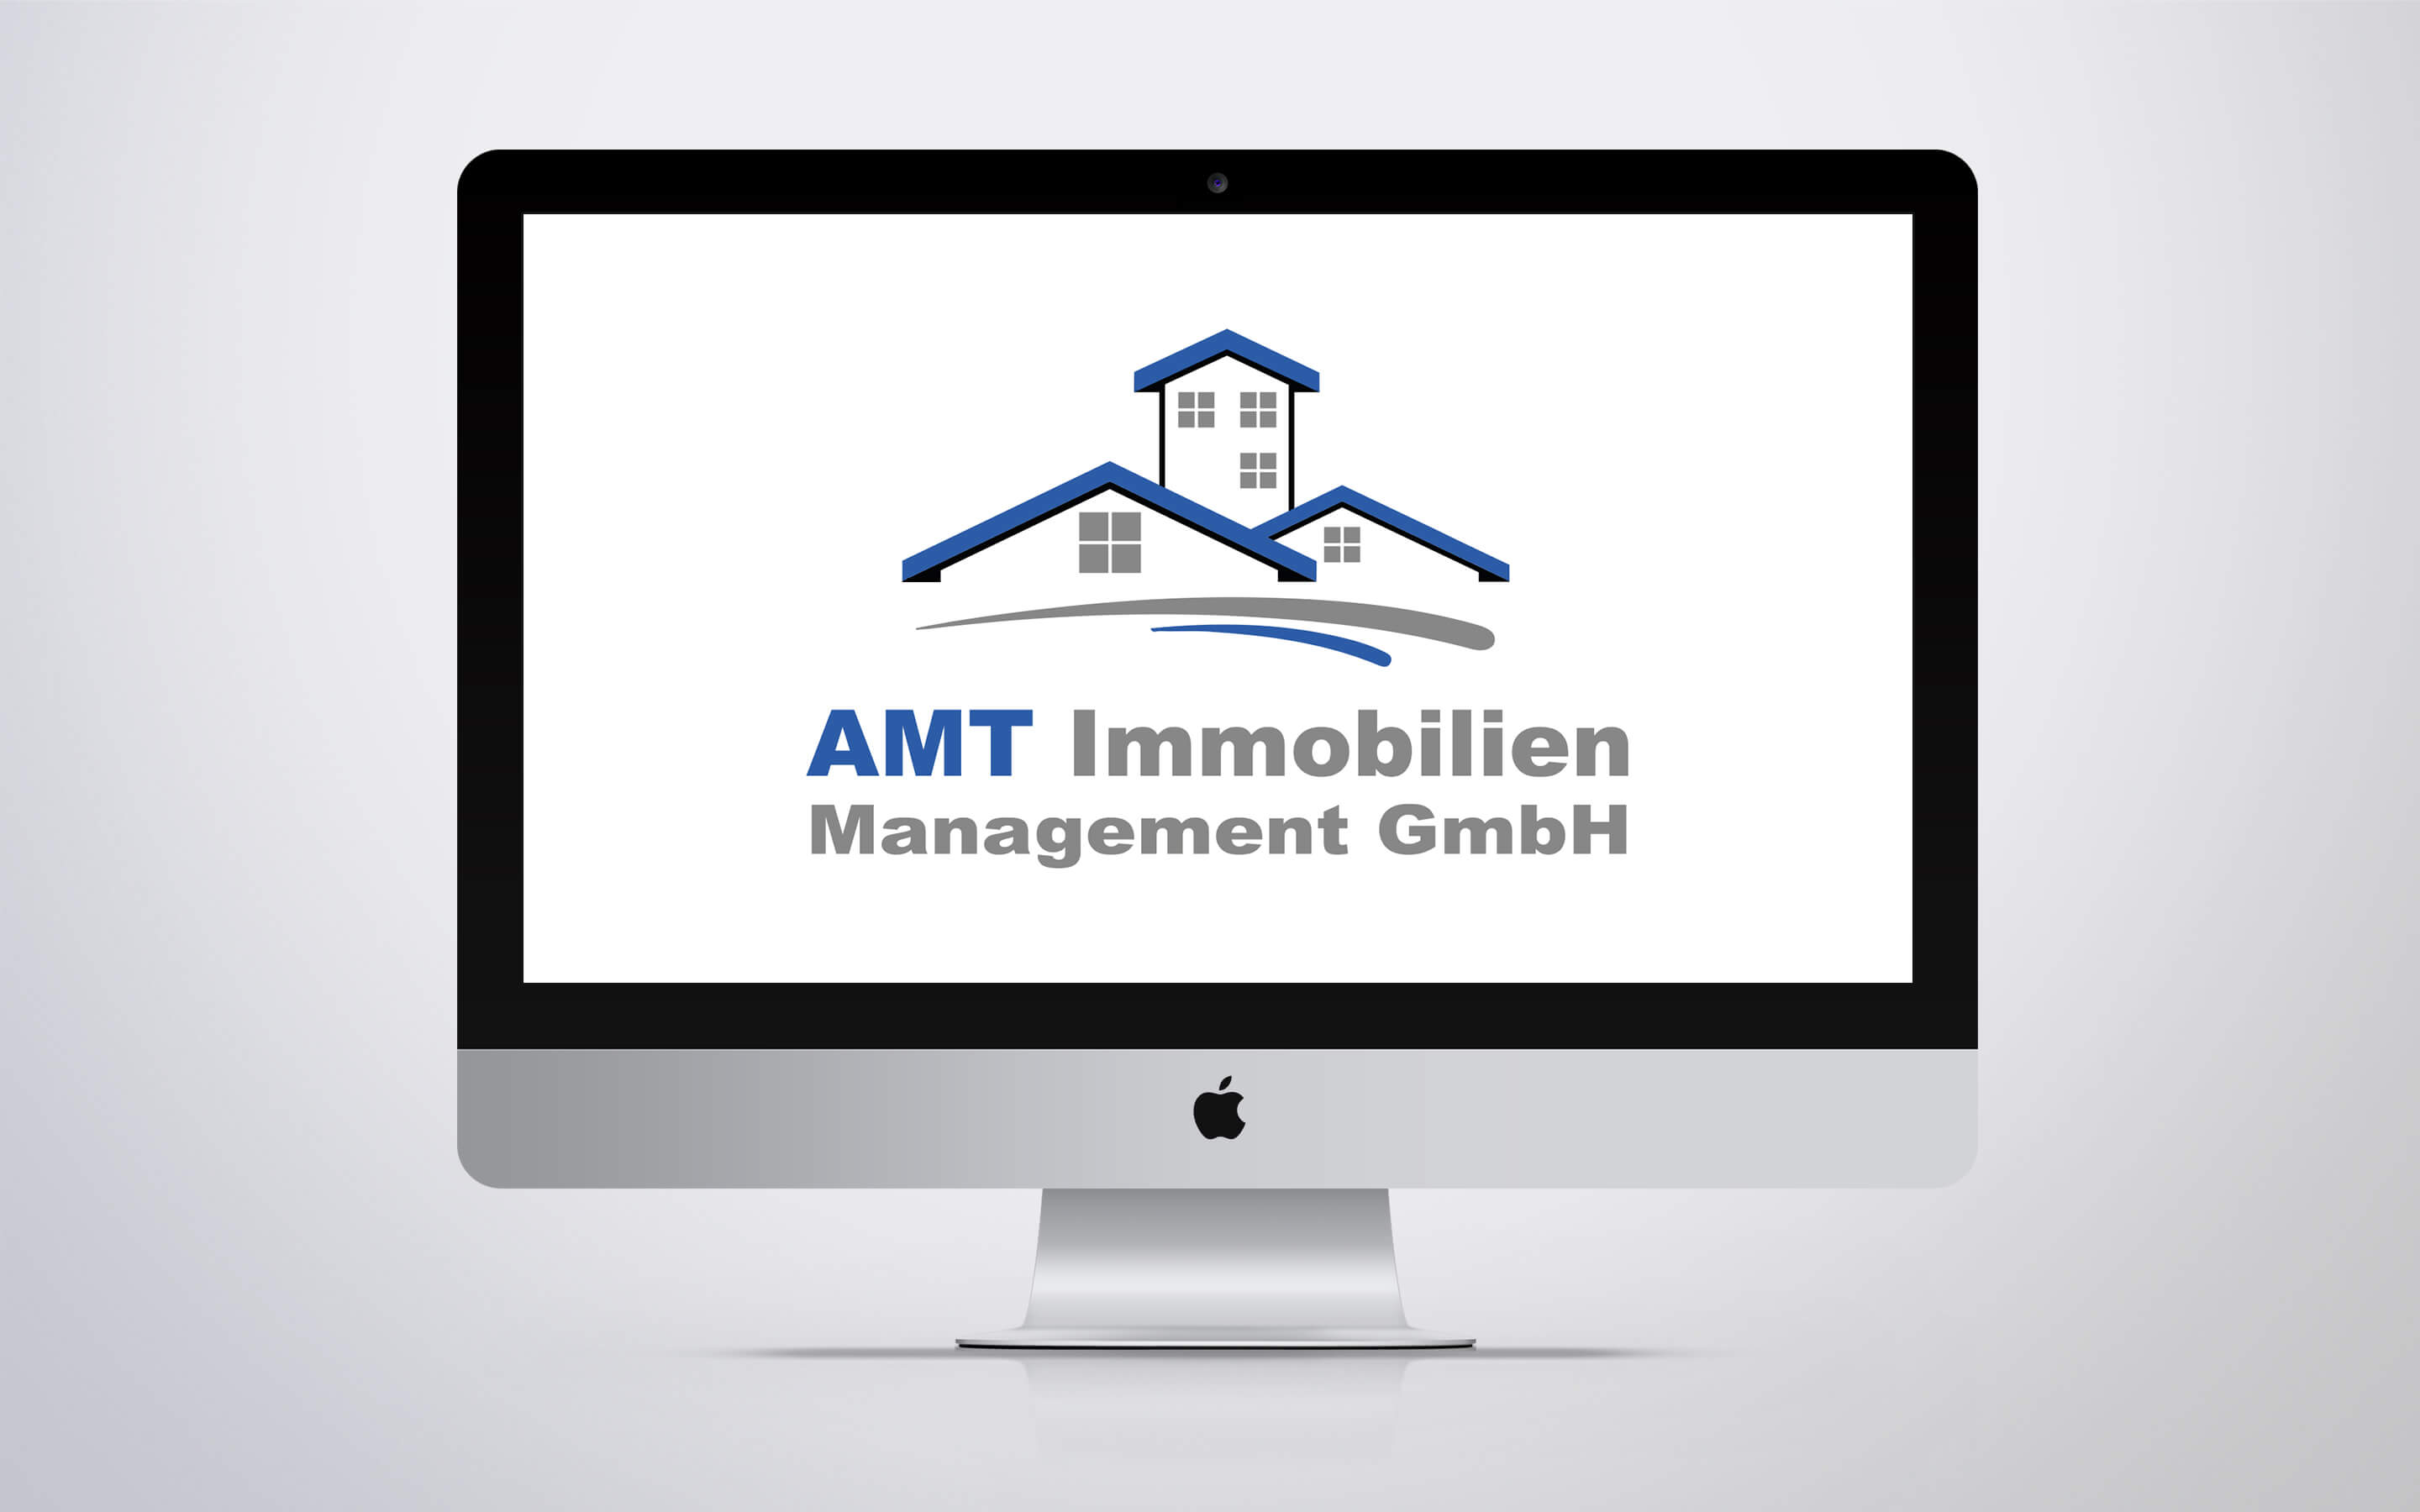 AMT Immobilien-47Design